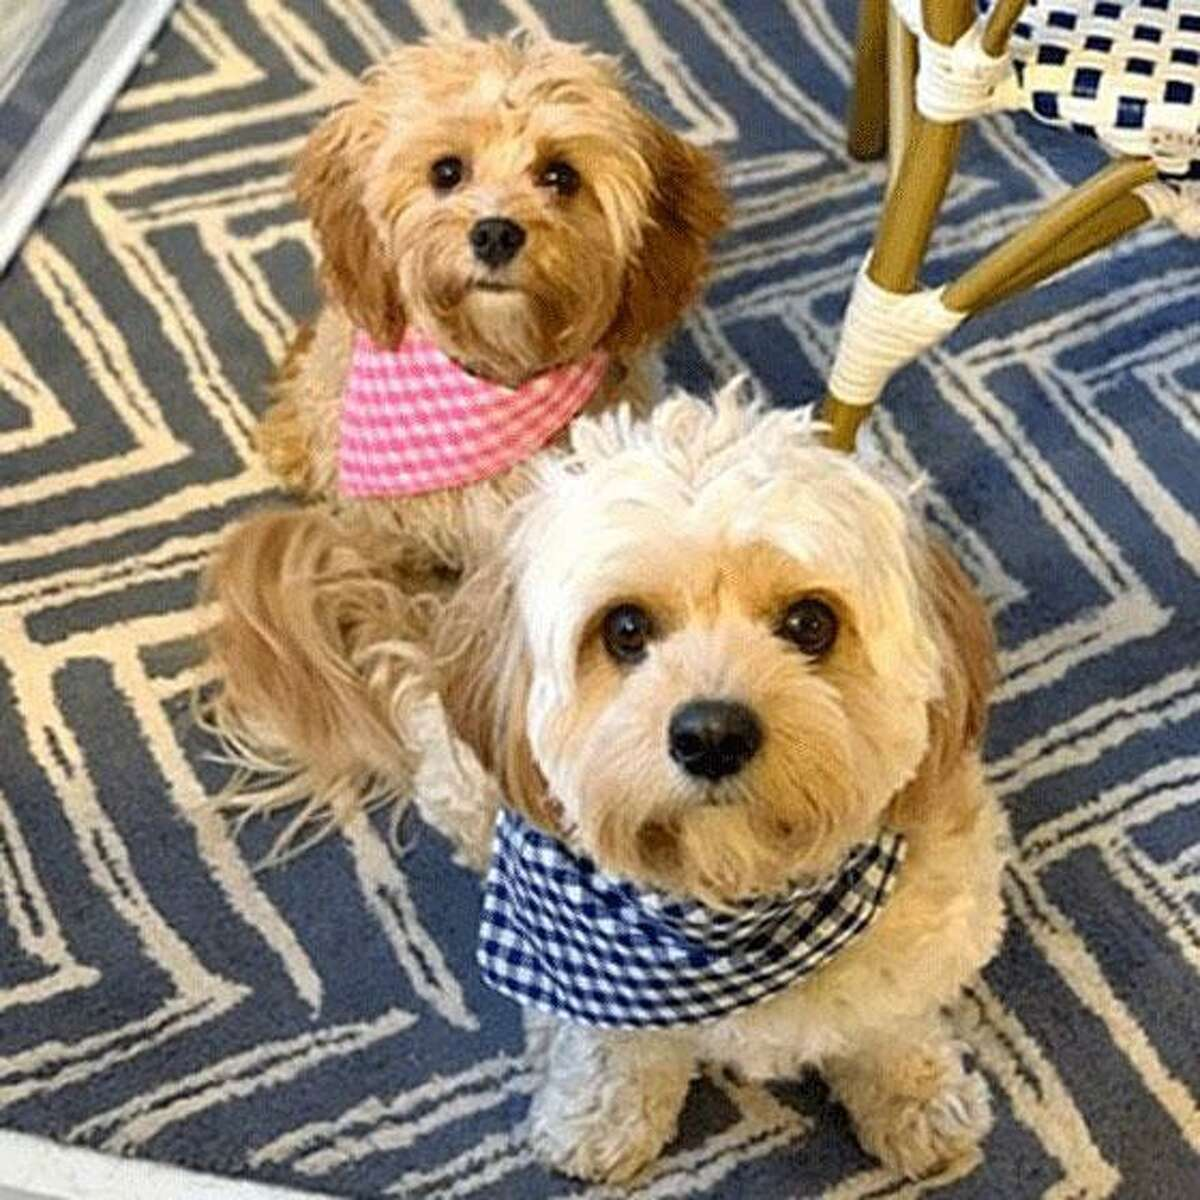 Siblings Lily and Cody, owned by Christen Ryan of Norwalk, were winners in the Mutt Strut & Friends Virtual contest held by the Norwalk River Valley Trail.